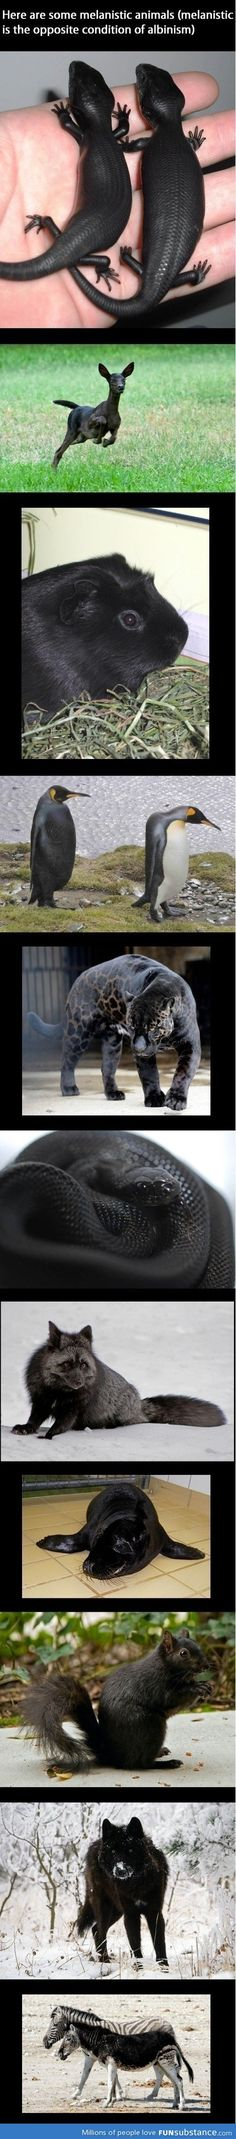 Melanism - Dark coloration of the skin, hair, fur, or feathers because of a high concentration of melanin. Opposite of Albino. I never considered that there was an opposite of albinism. Rare Animals, Animals And Pets, Funny Animals, Exotic Animals, Unique Animals, Amazing Animals, Animals Beautiful, Adorable Animals, Melanistic Animals